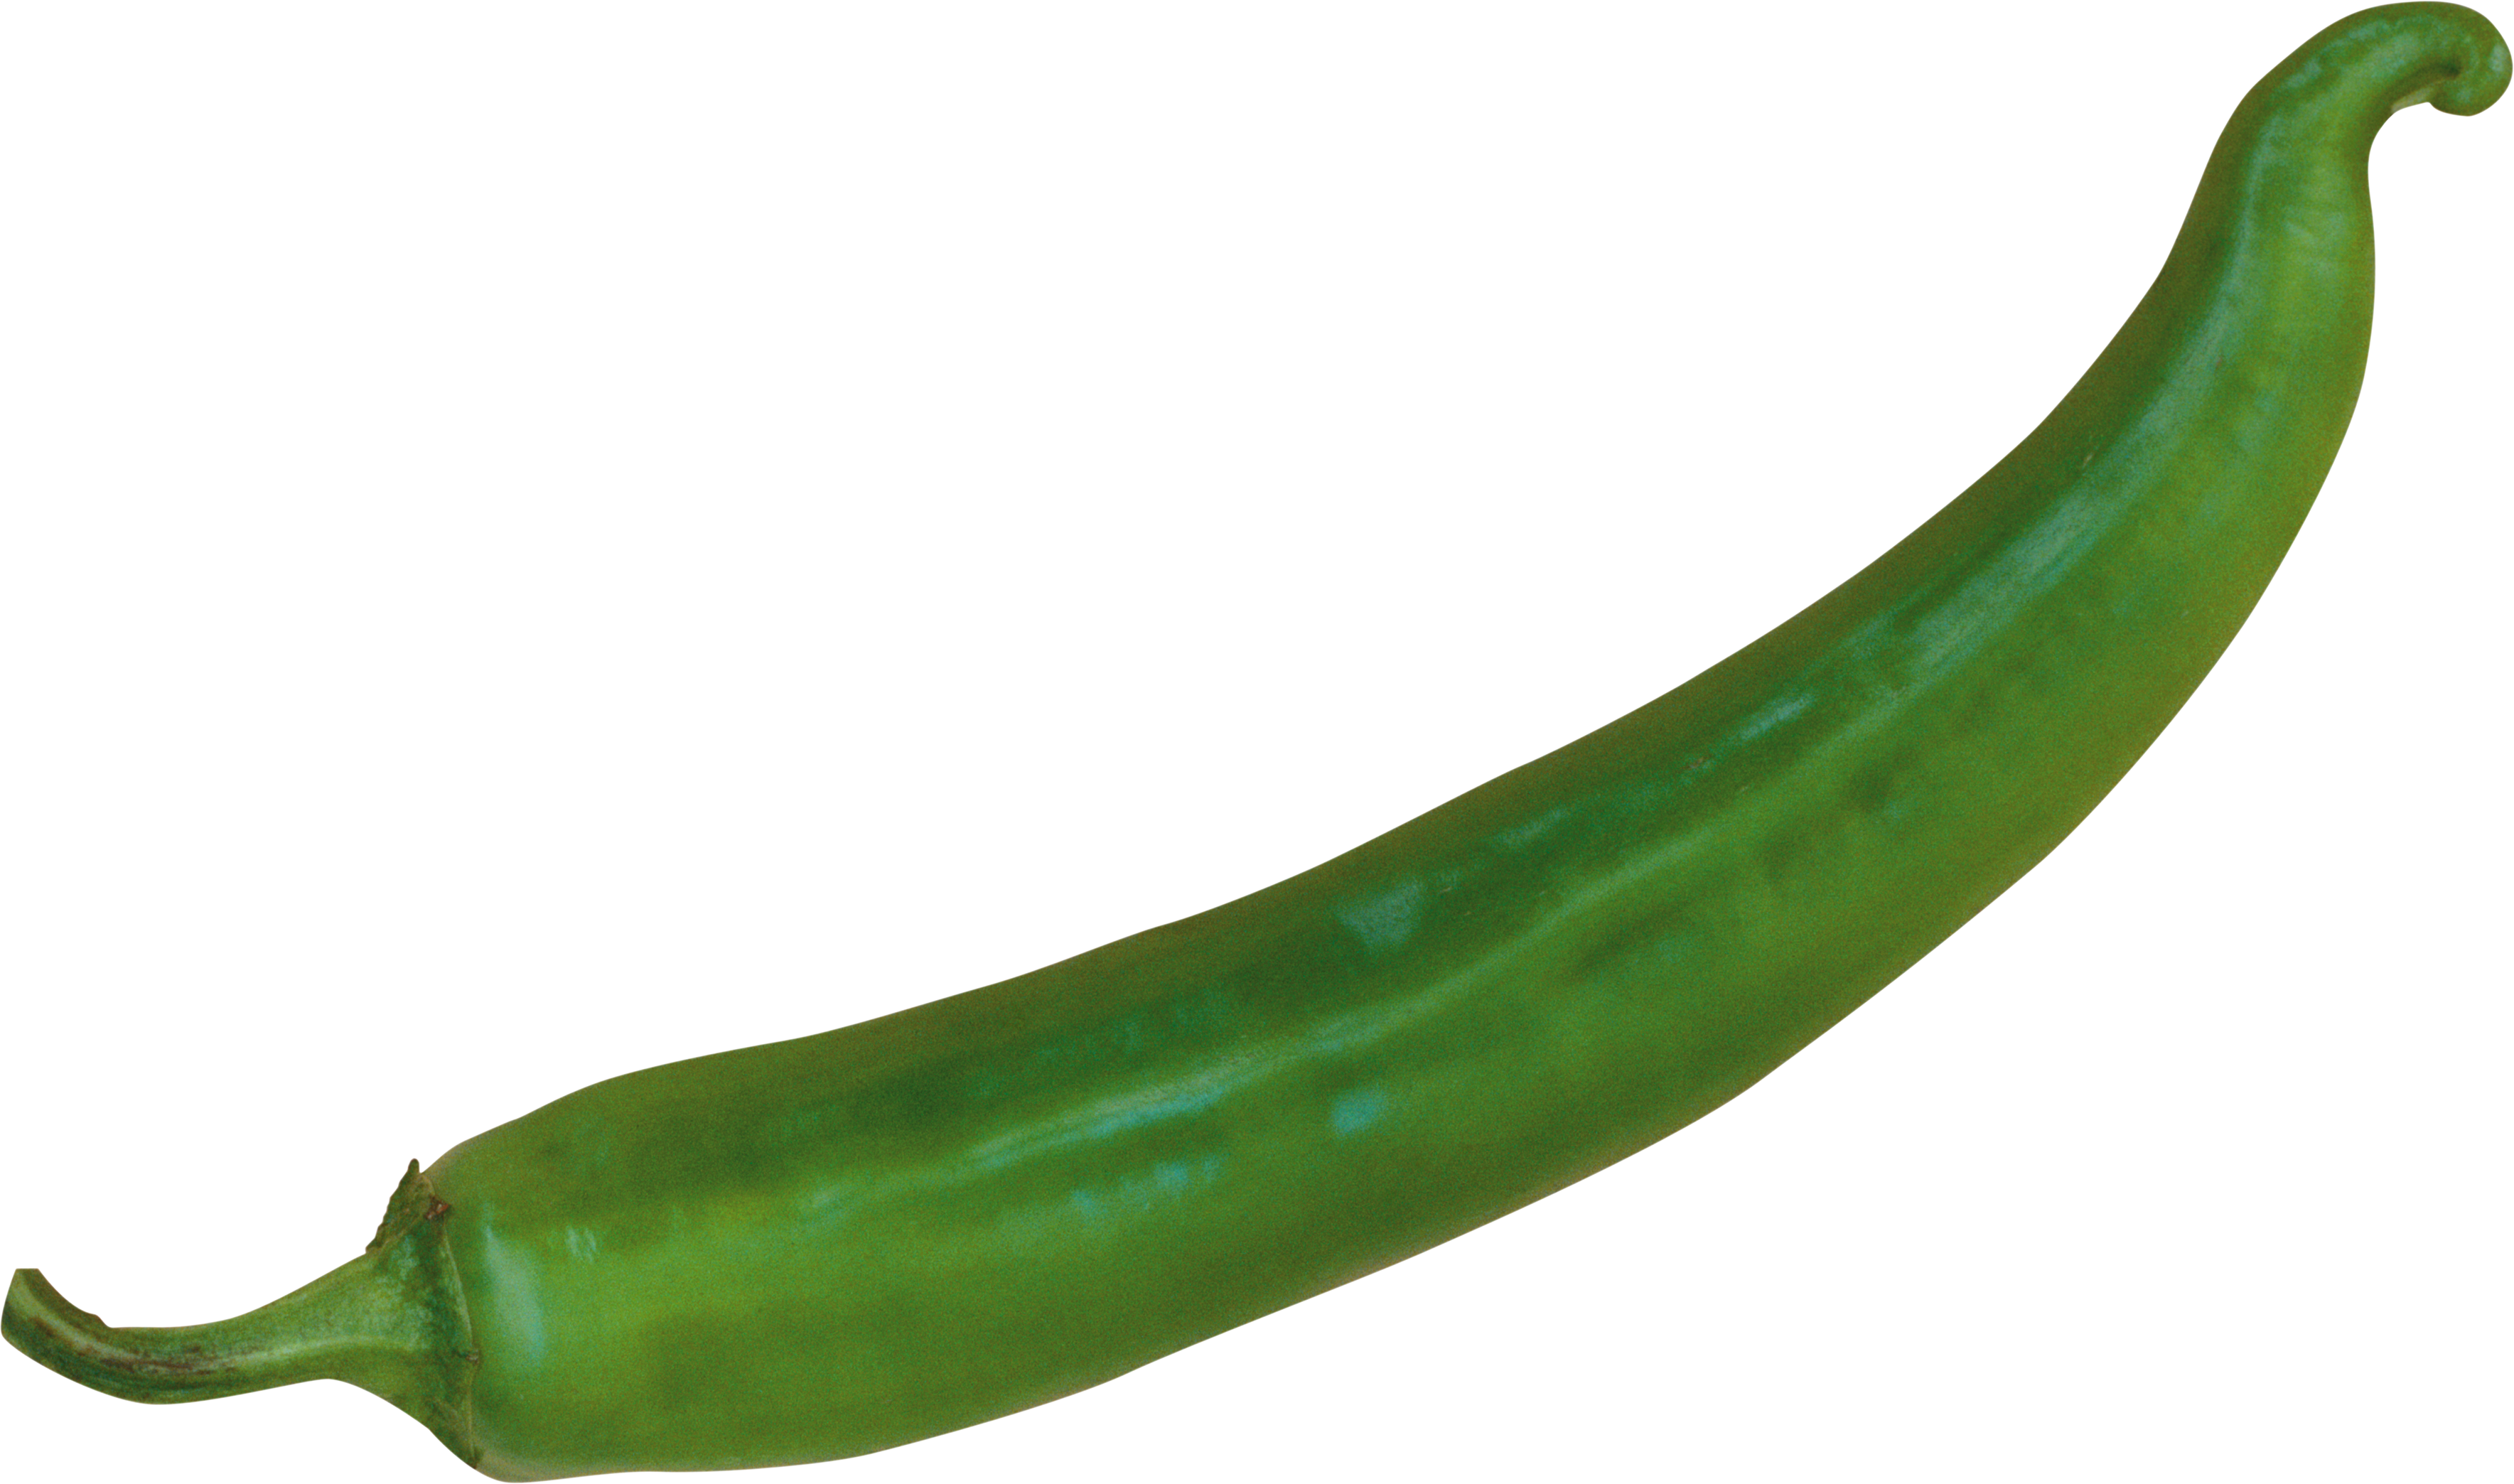 Hot chili eight isolated. Pepper clipart serrano pepper